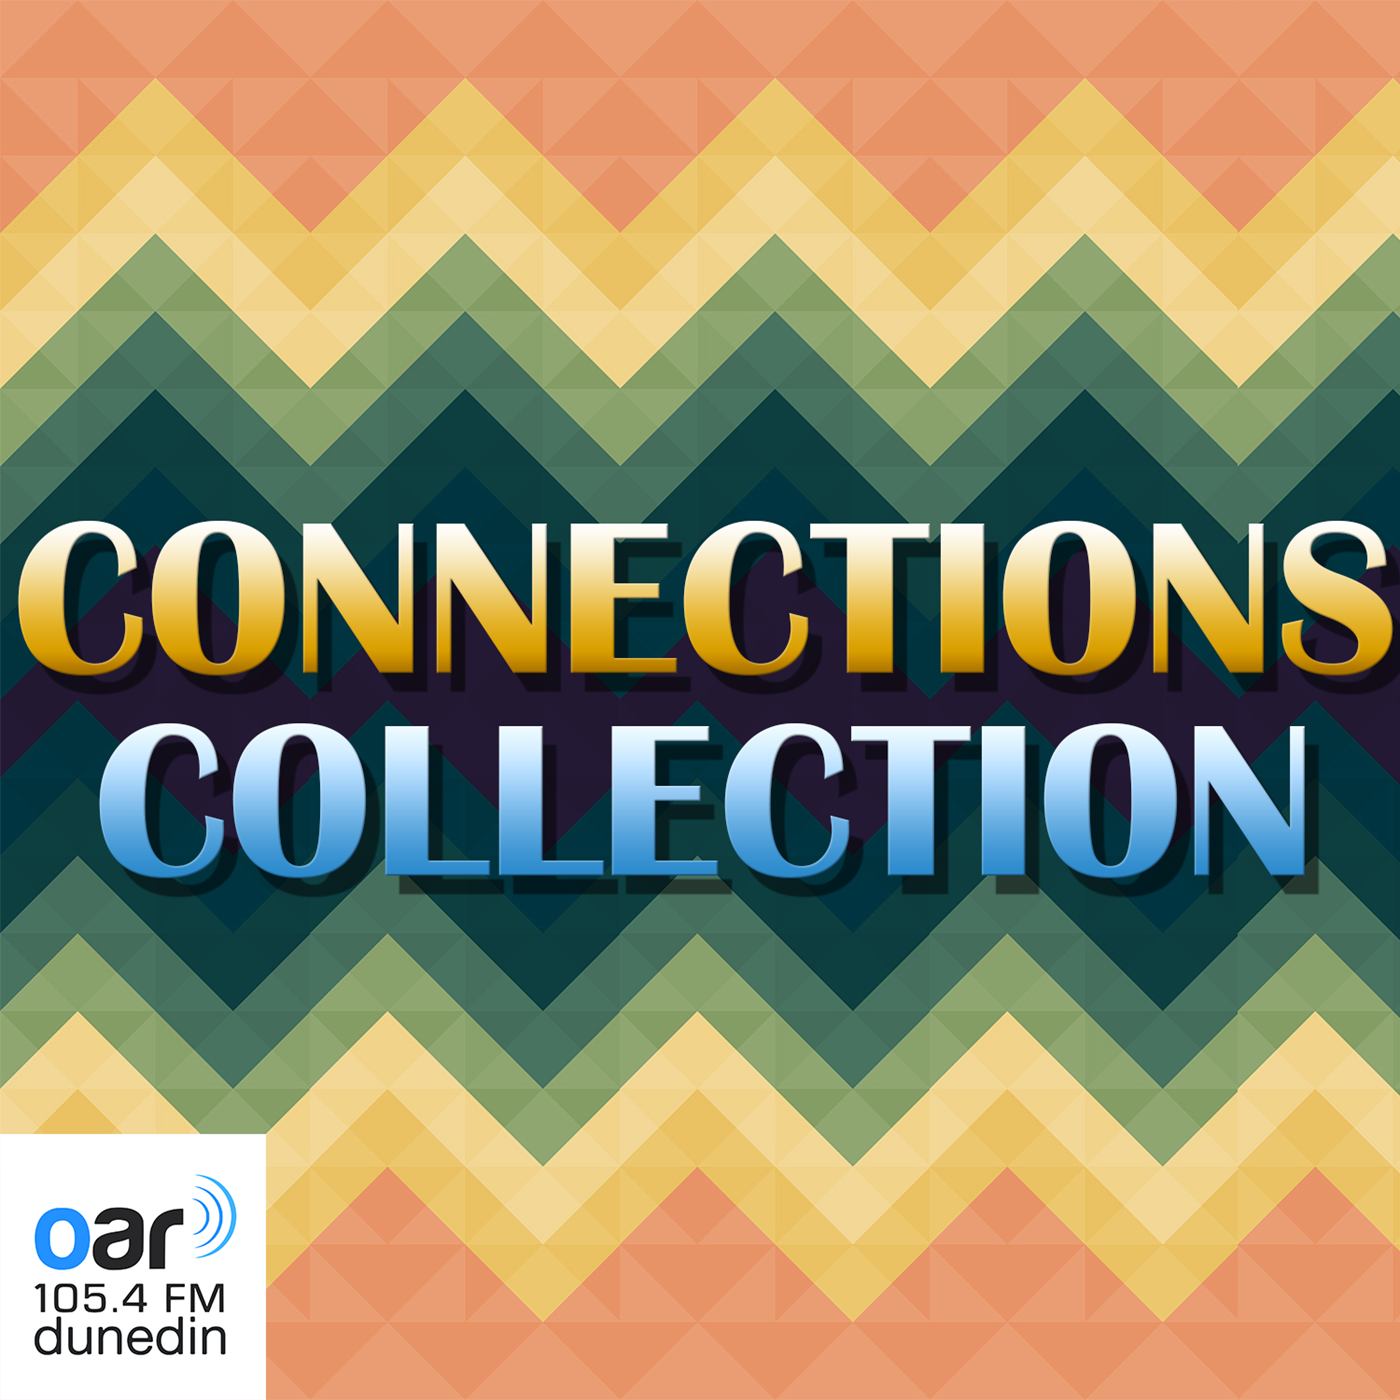 Connections Collection - 31-03-2018